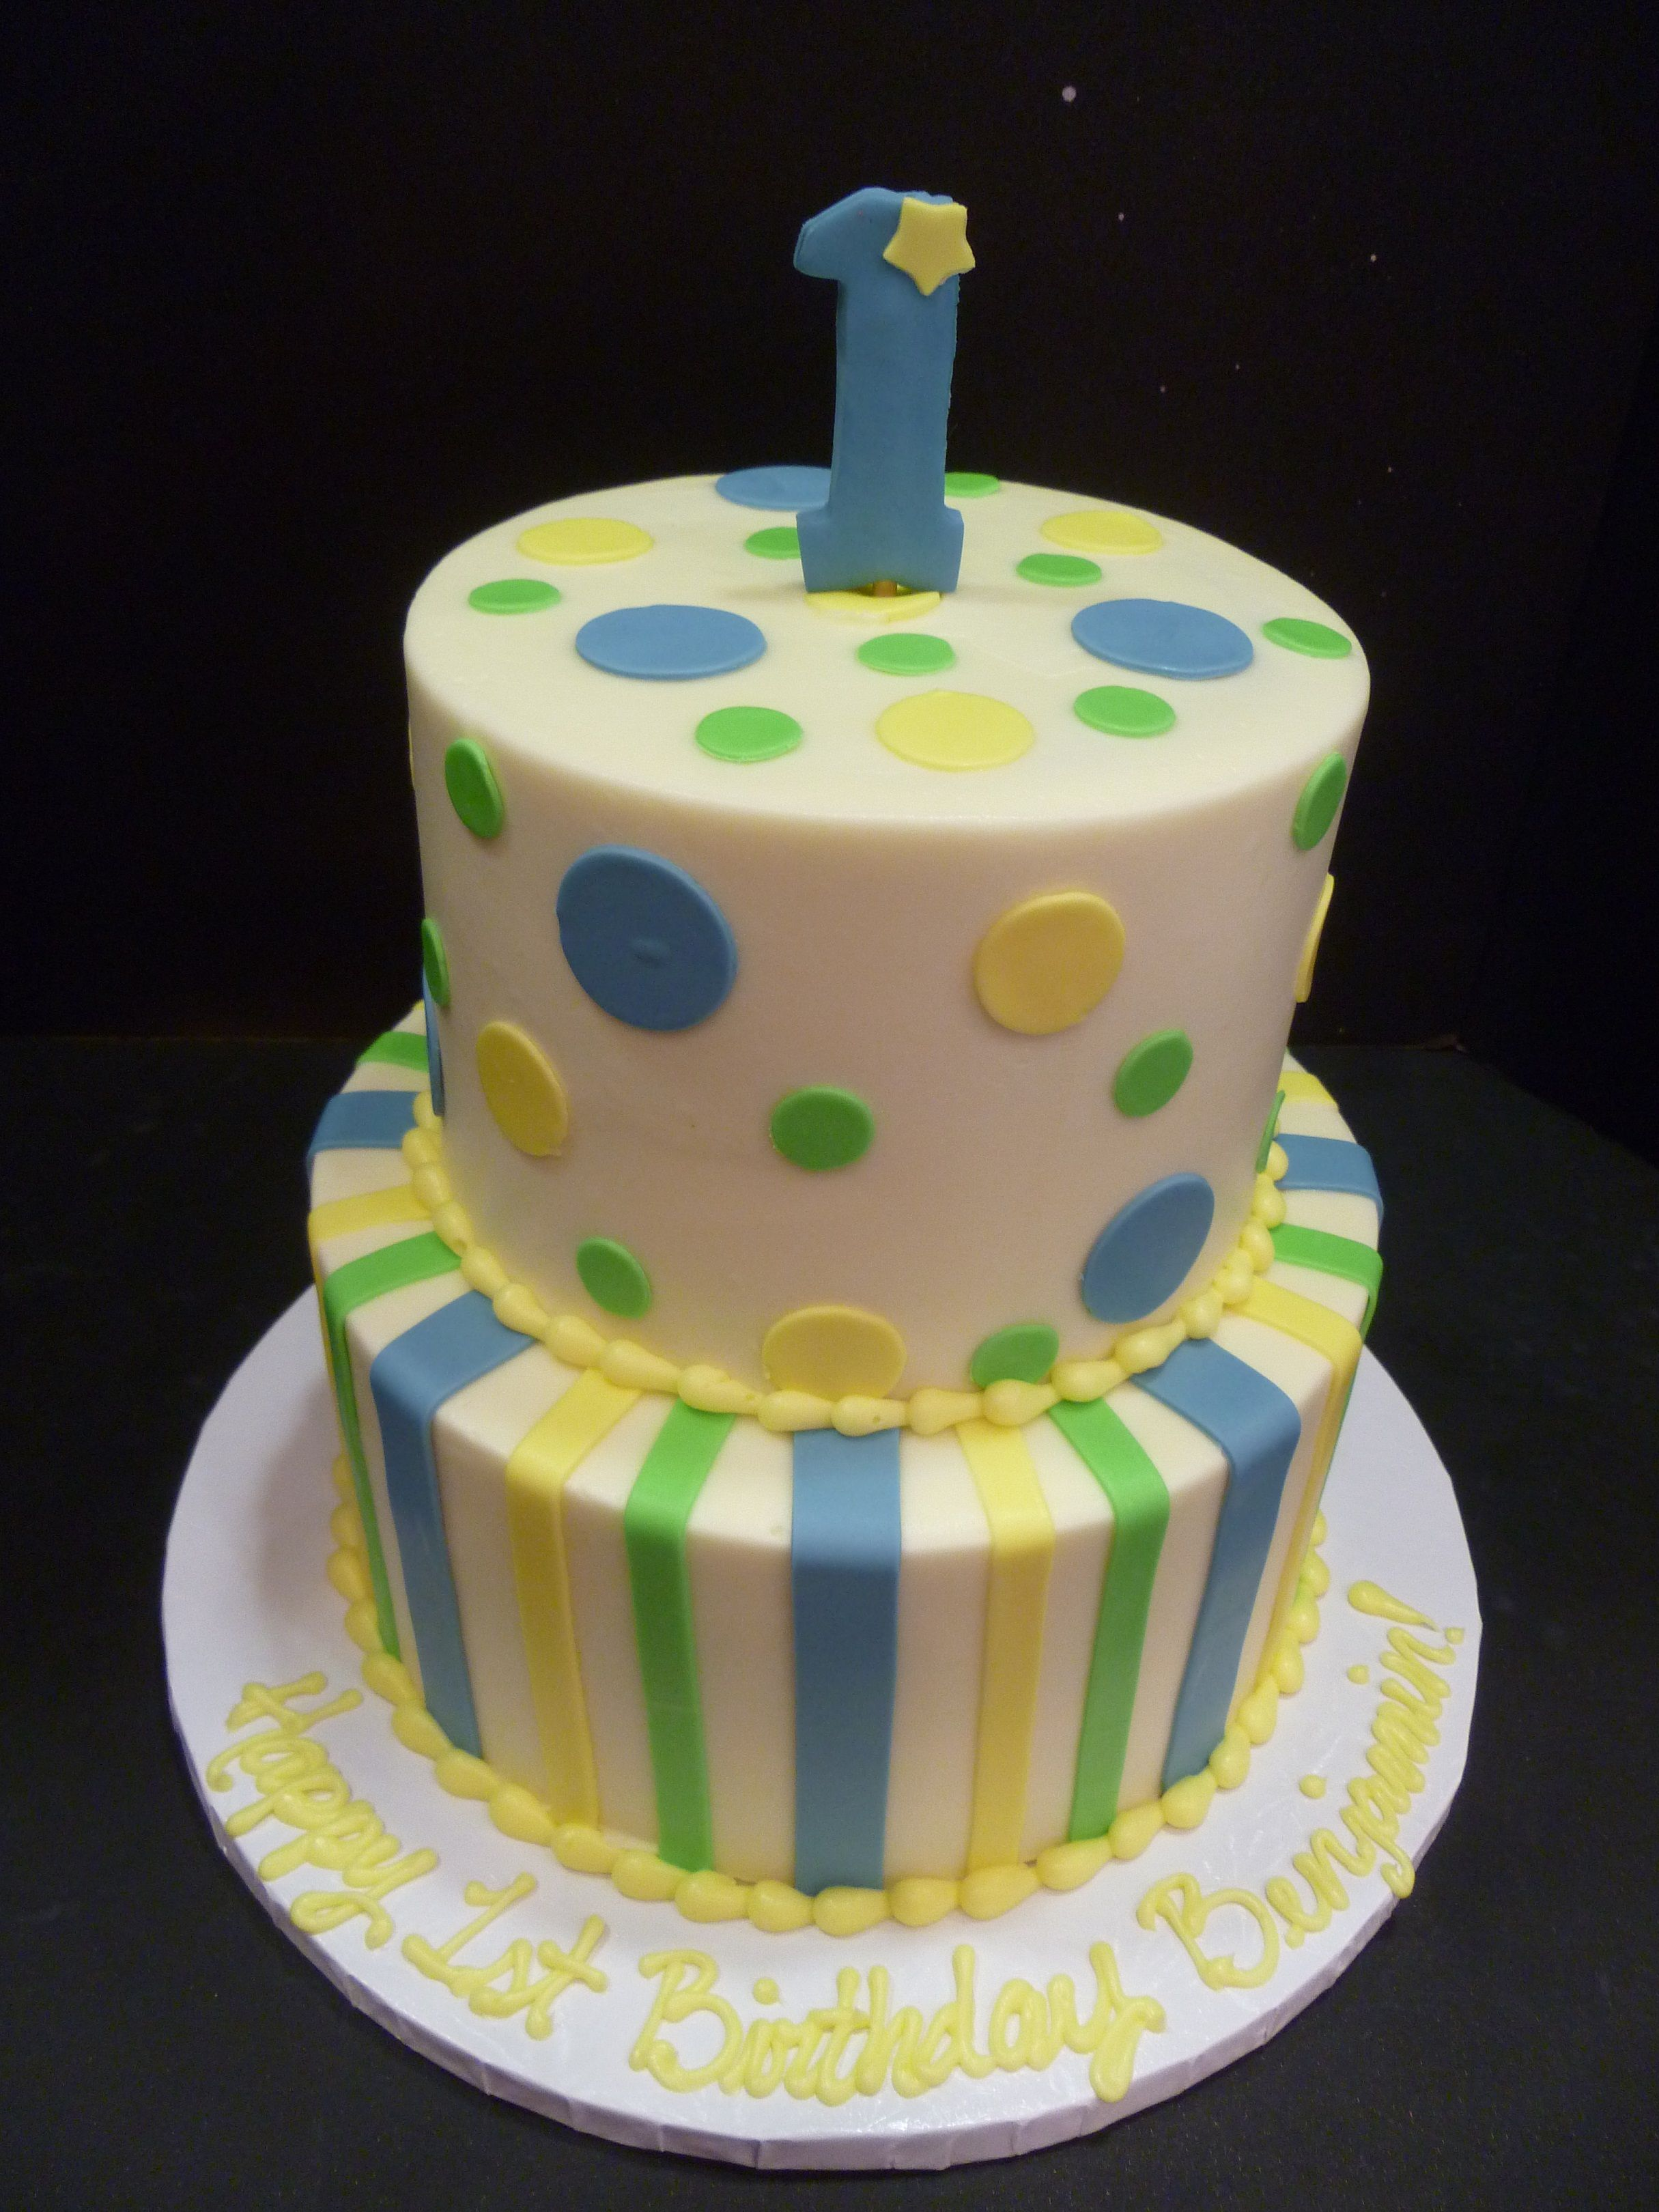 Design For Birthday Cake For Boy : birthday cake 1st-birthday-cake-for-boy.jpg Birthday ...